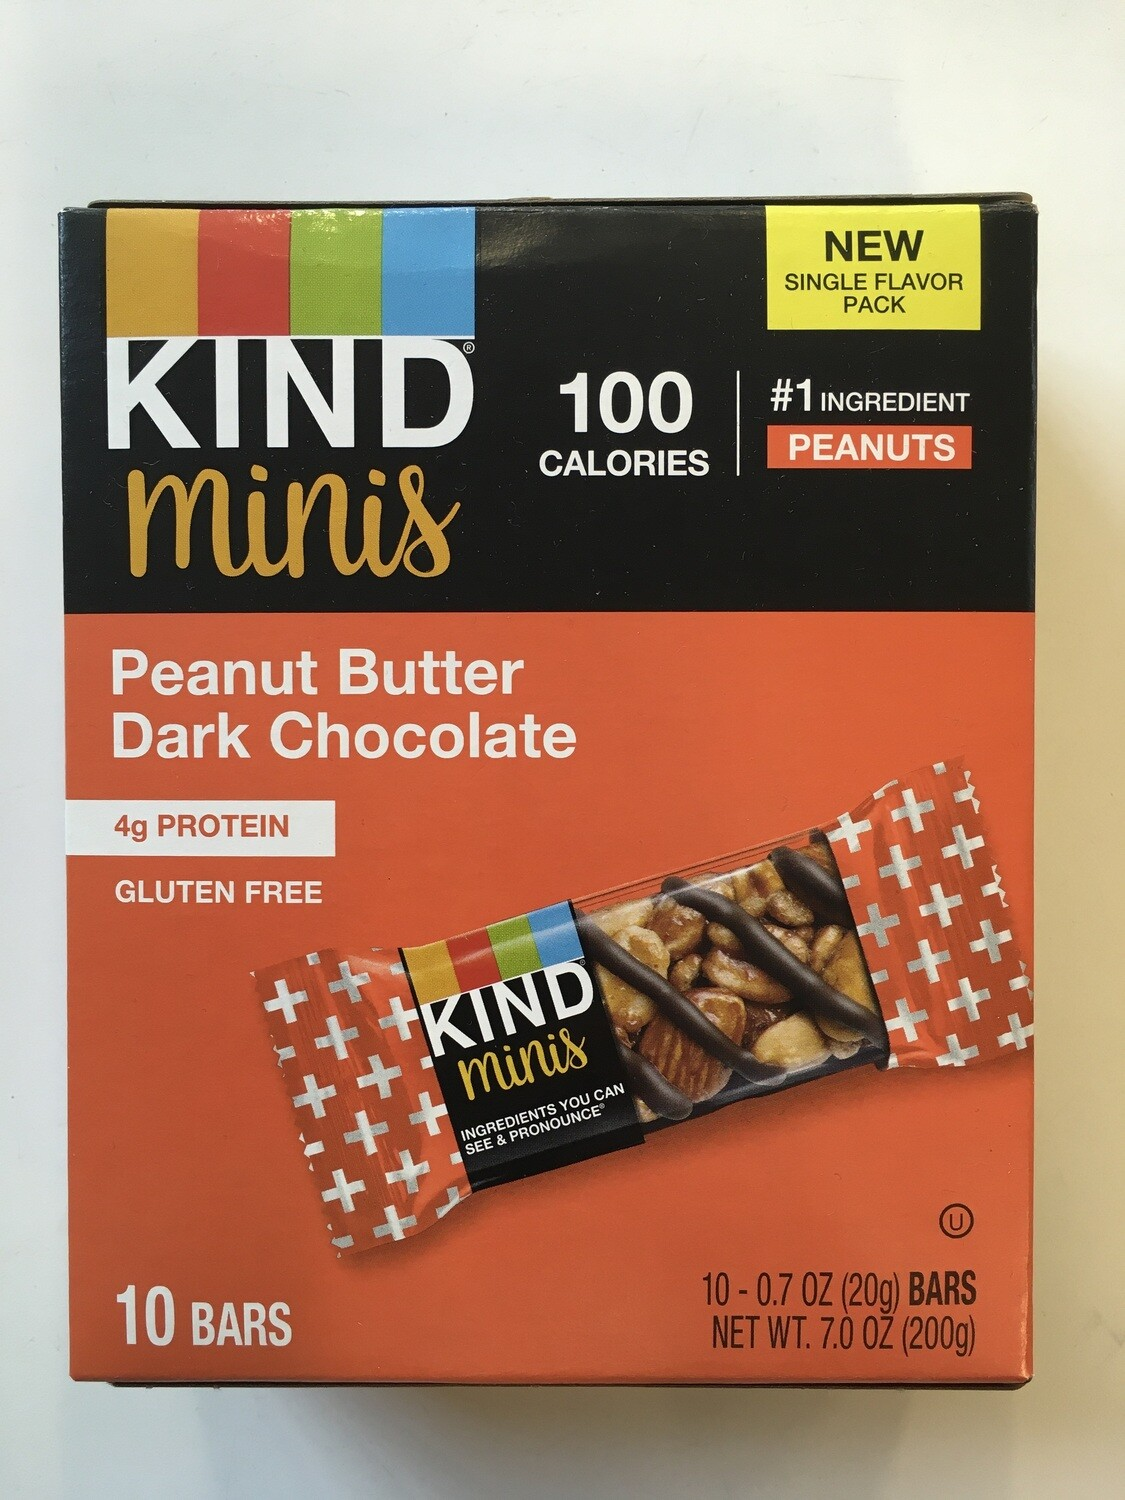 Snack / Bar / Kind Minis Peanut Butter Dark Chocolate, 10 pack